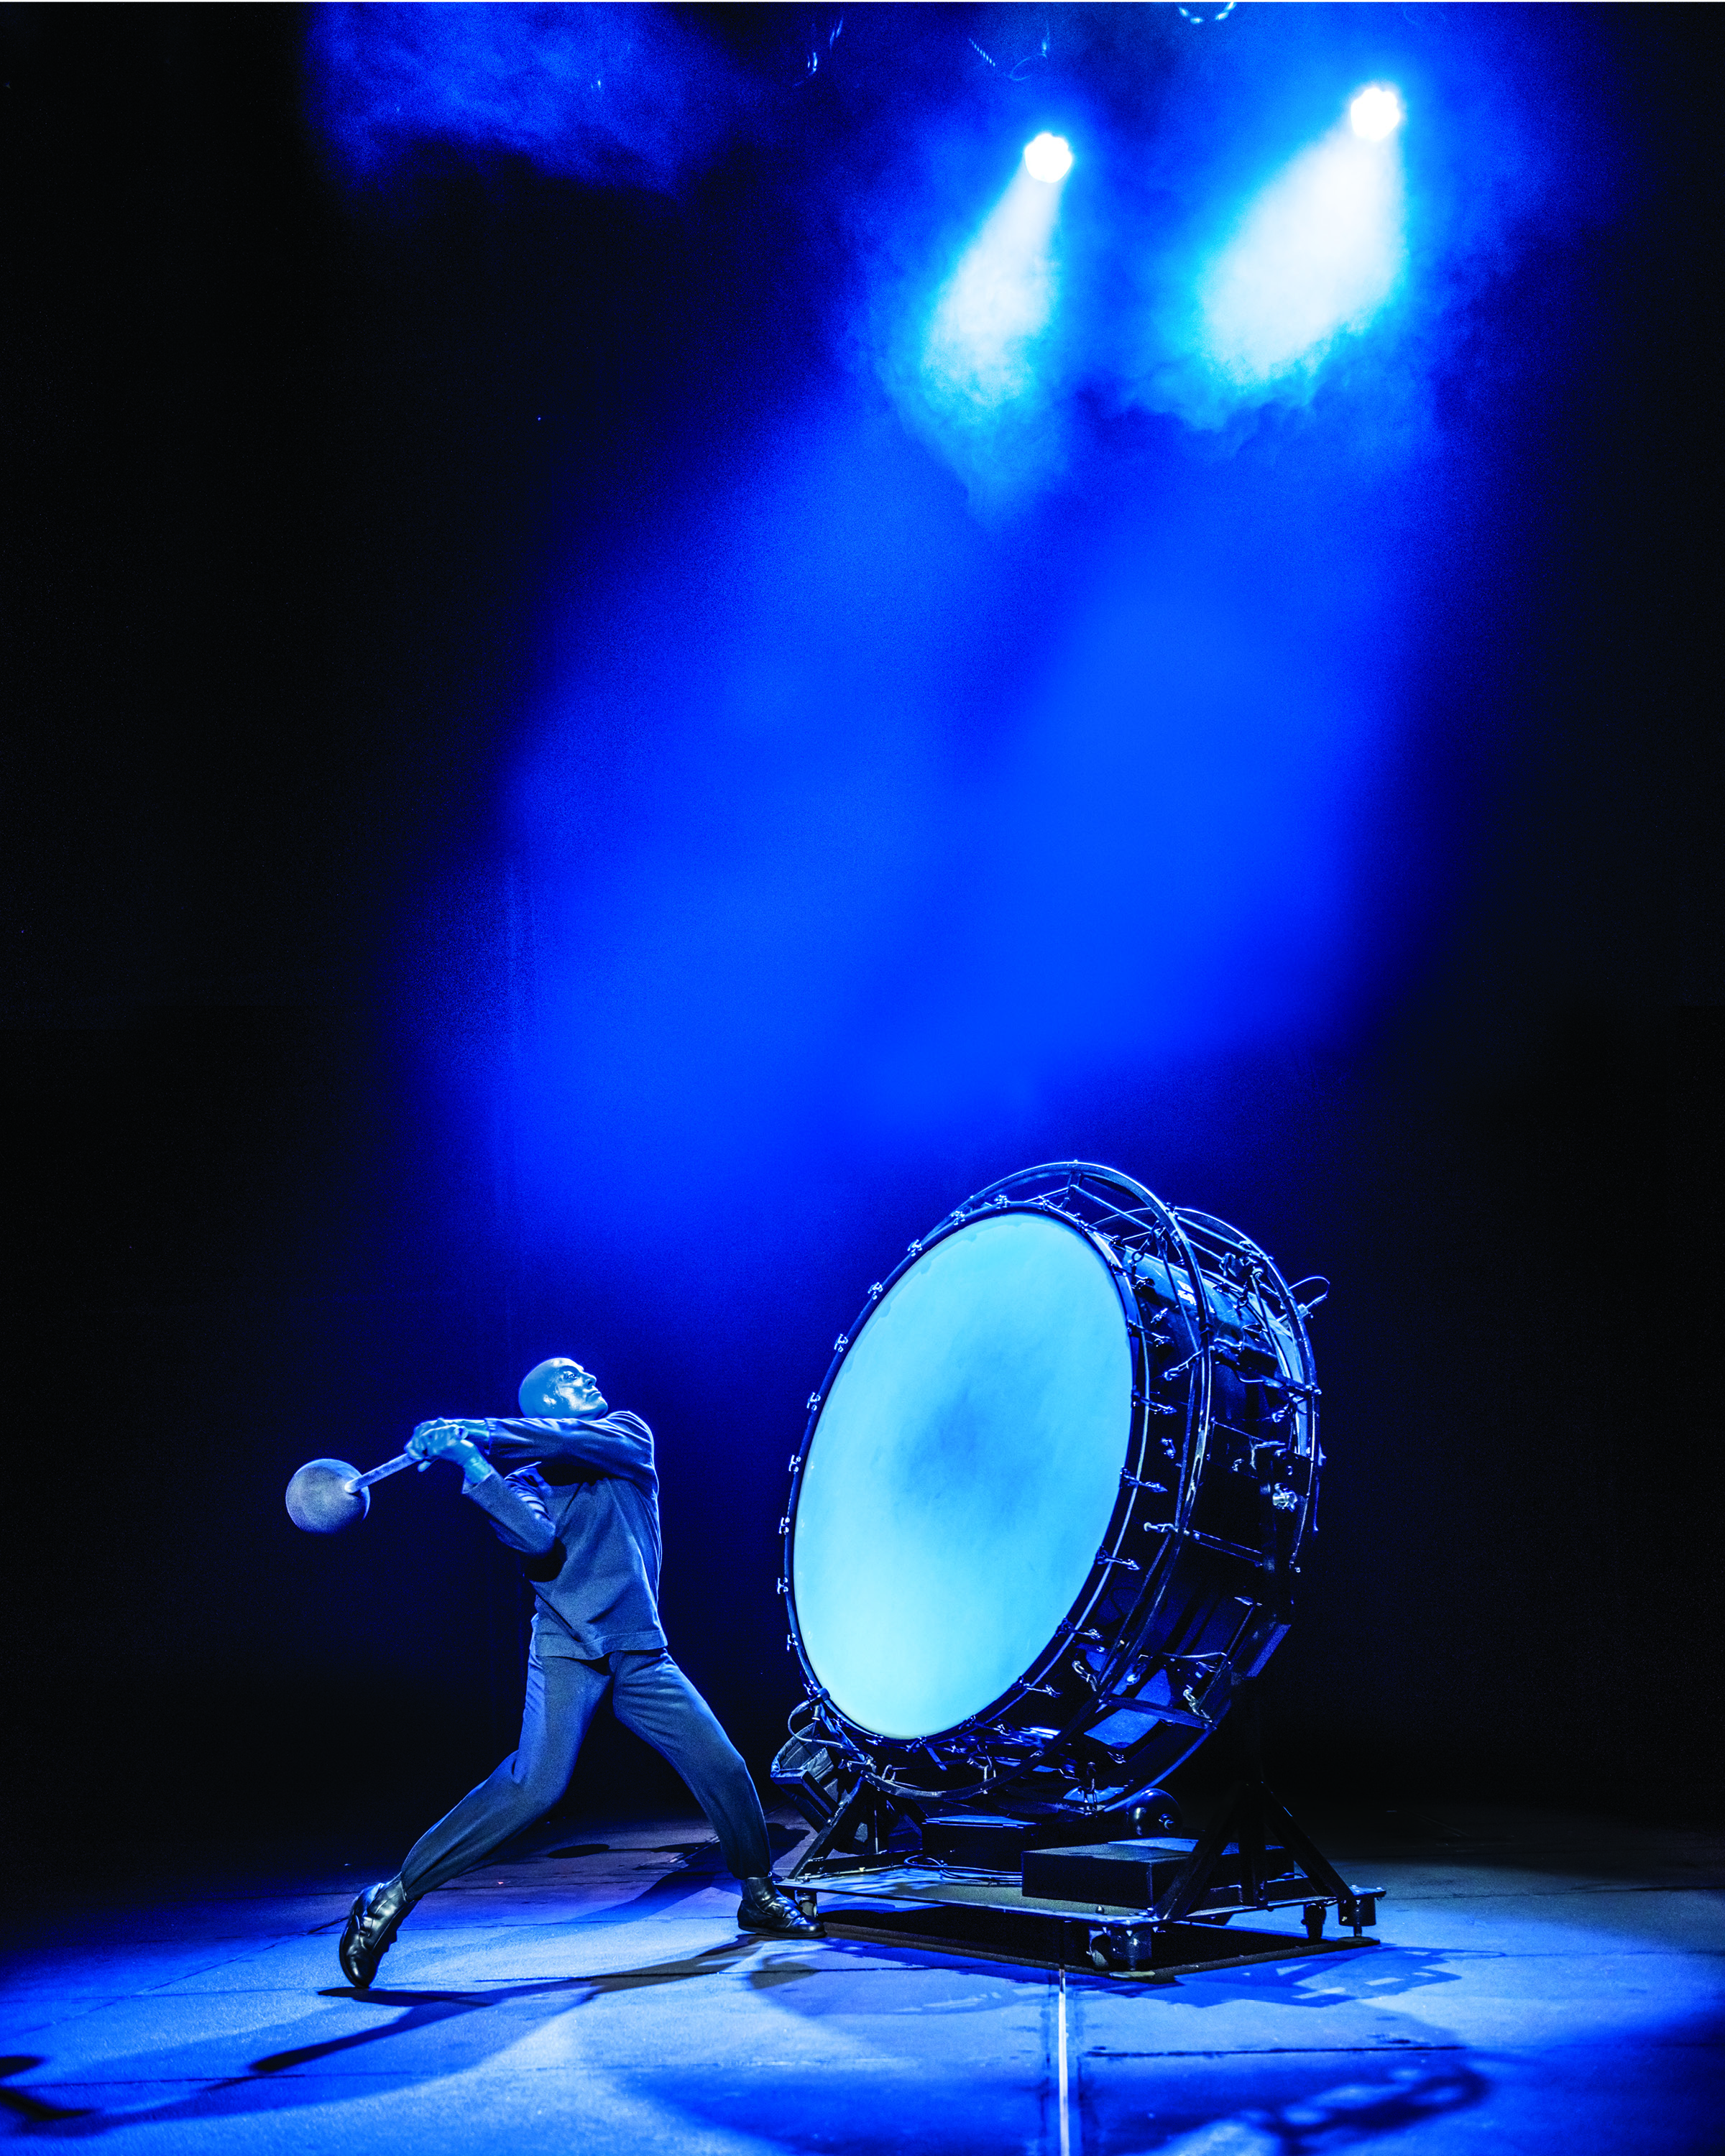 BlueMan_photo_BigDrum_8x10.jpg.jpg